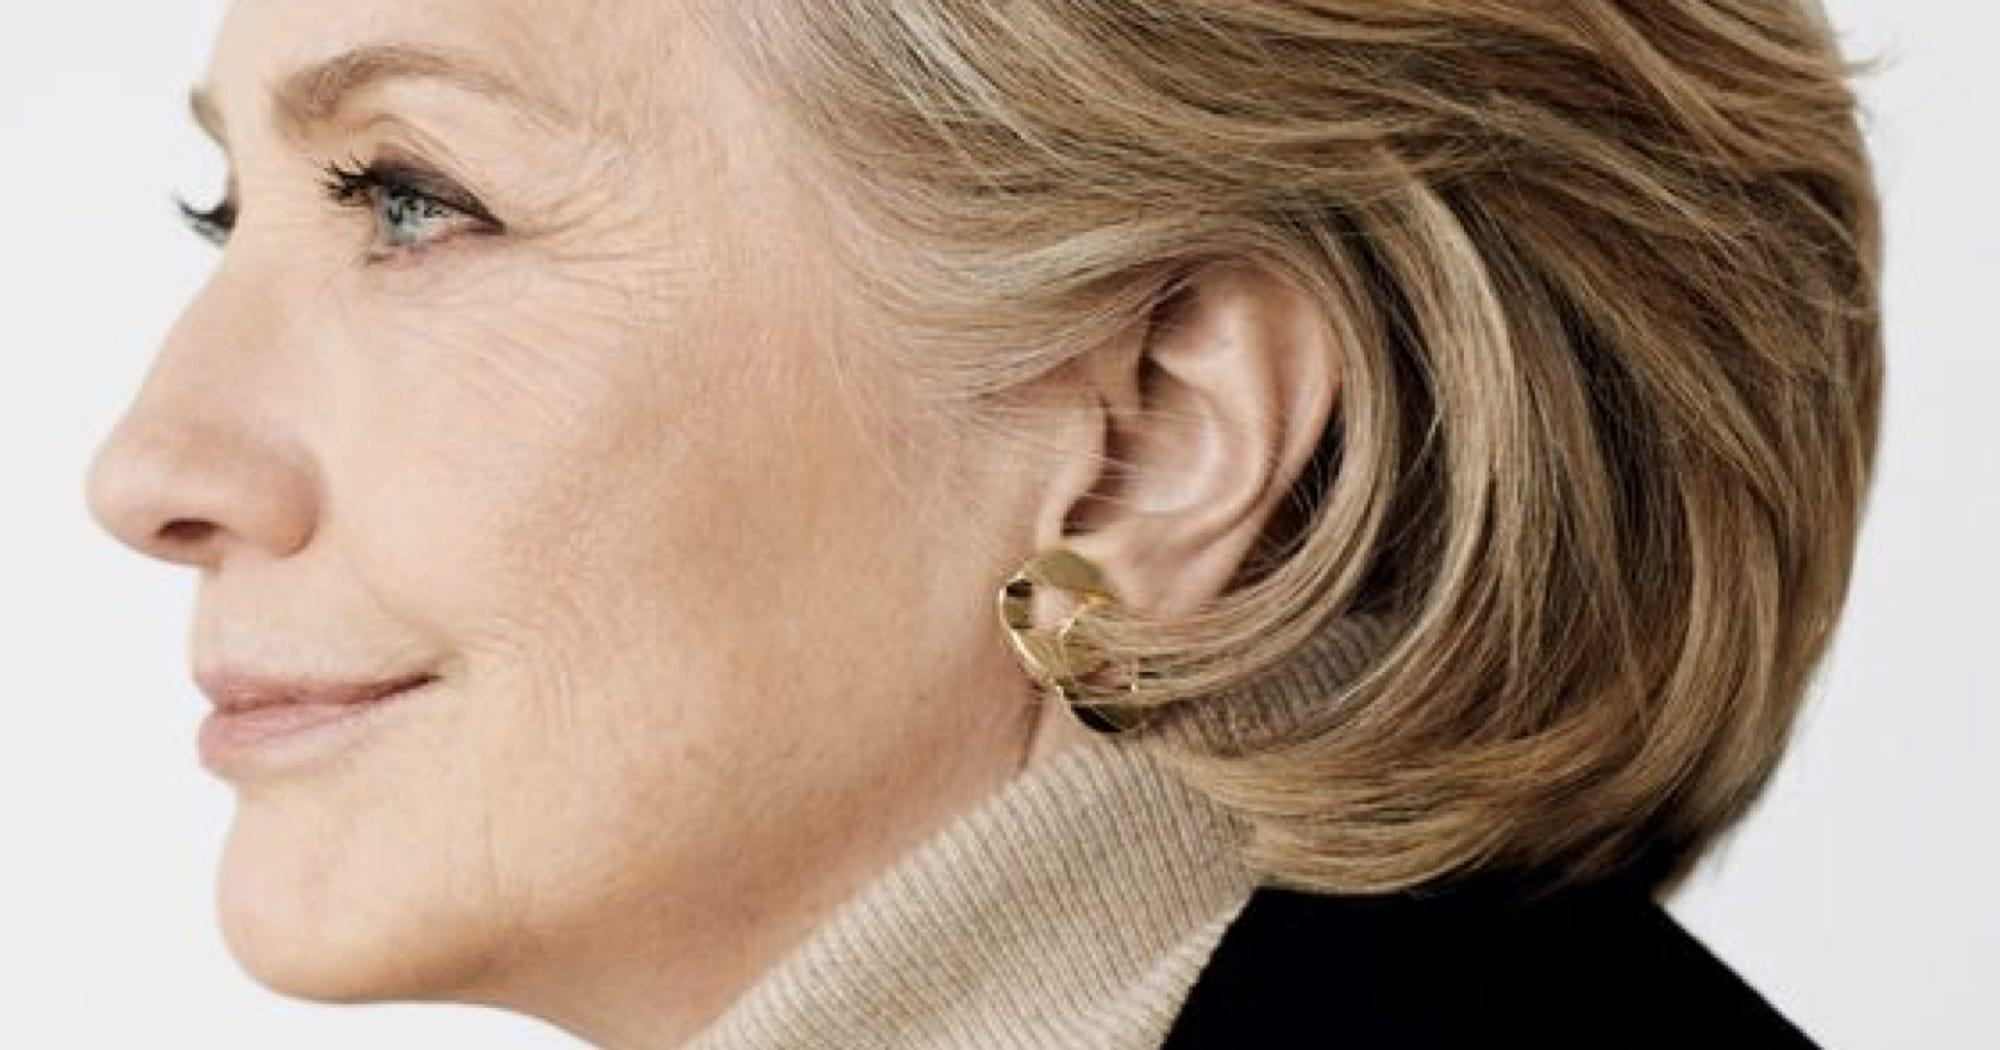 hilary clinton essay For better or worse, she will do a great job of maintaining status quo hillary clinton is a political insider who is not going to shake things up she has proven to be at least a competent administrator who held the secretary of state job with.